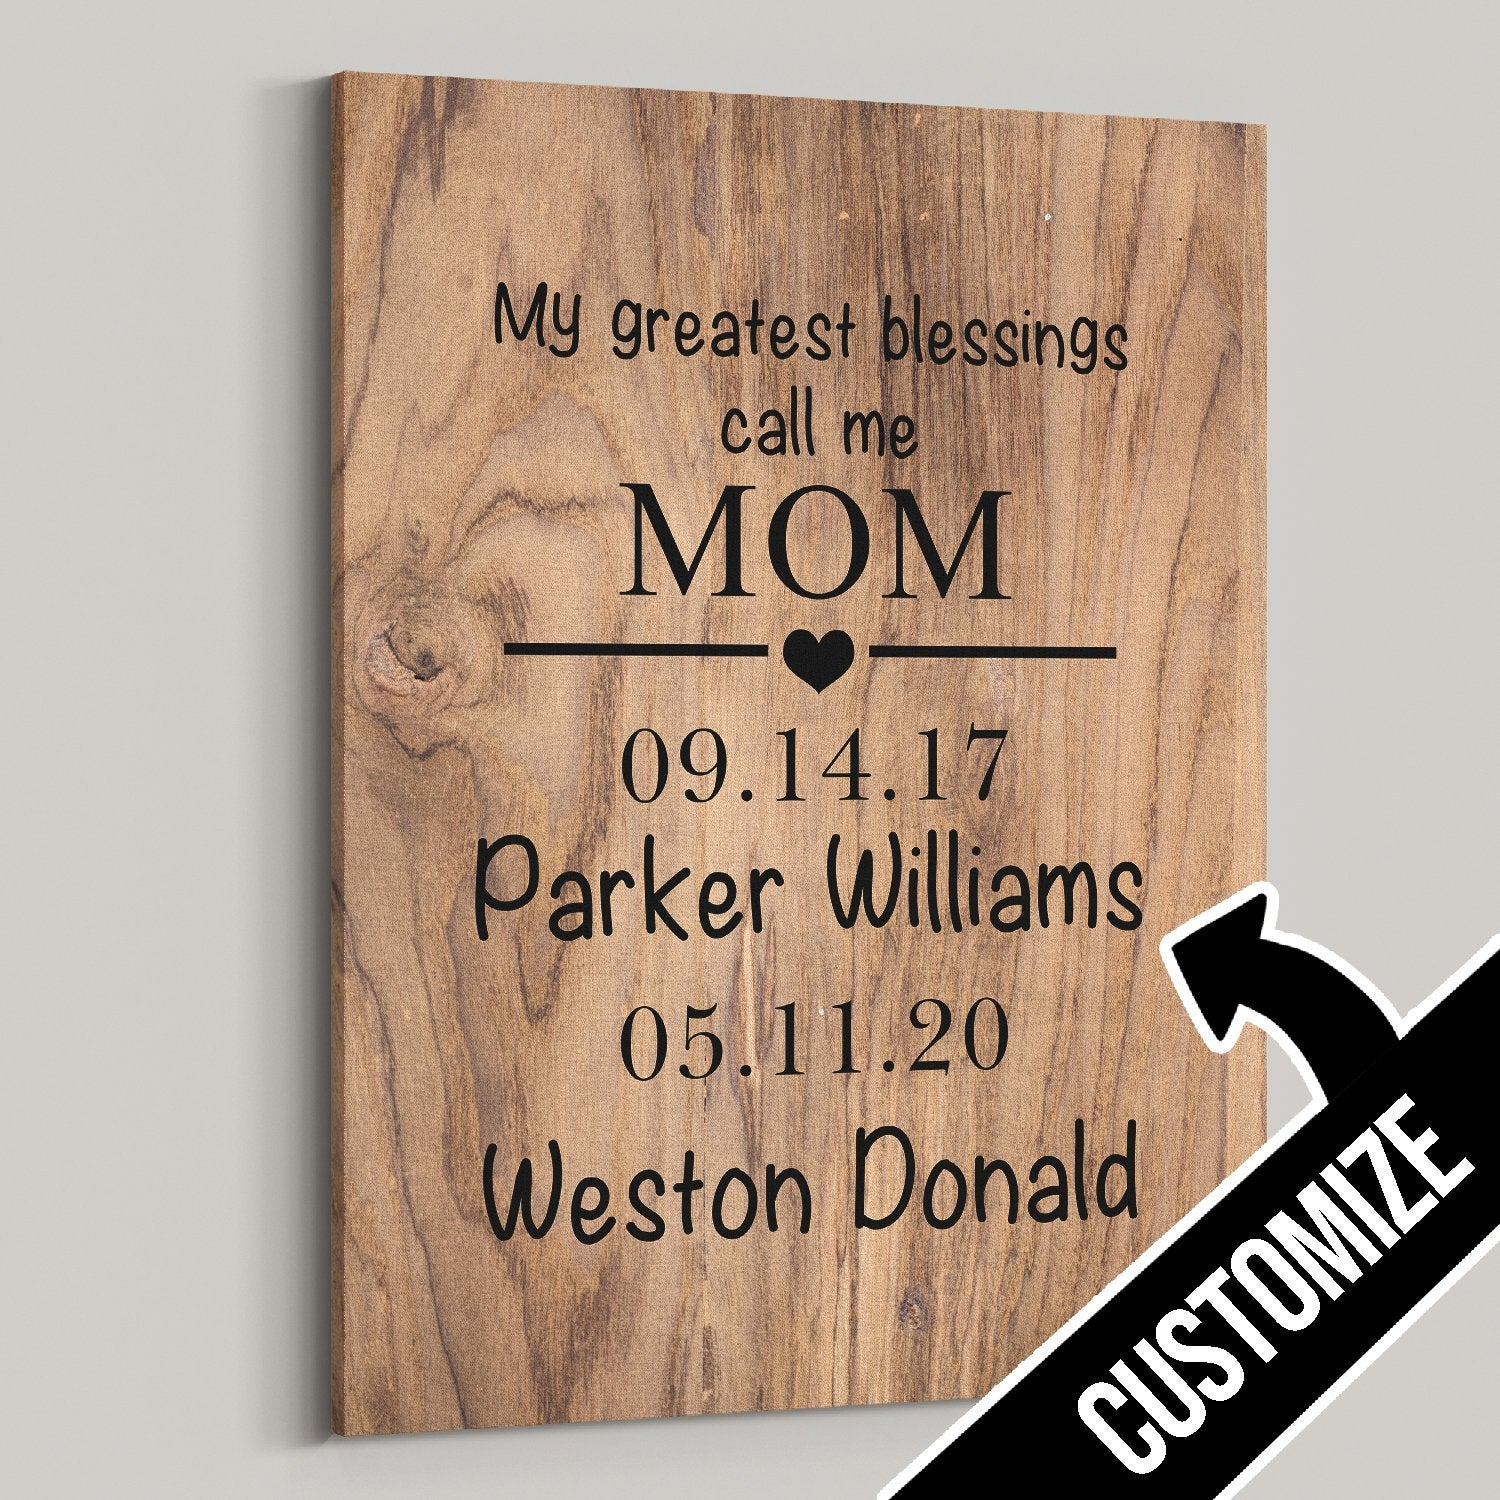 My Greatest Blessings Call Me Personalized Wood Canvas - Patriot Republic